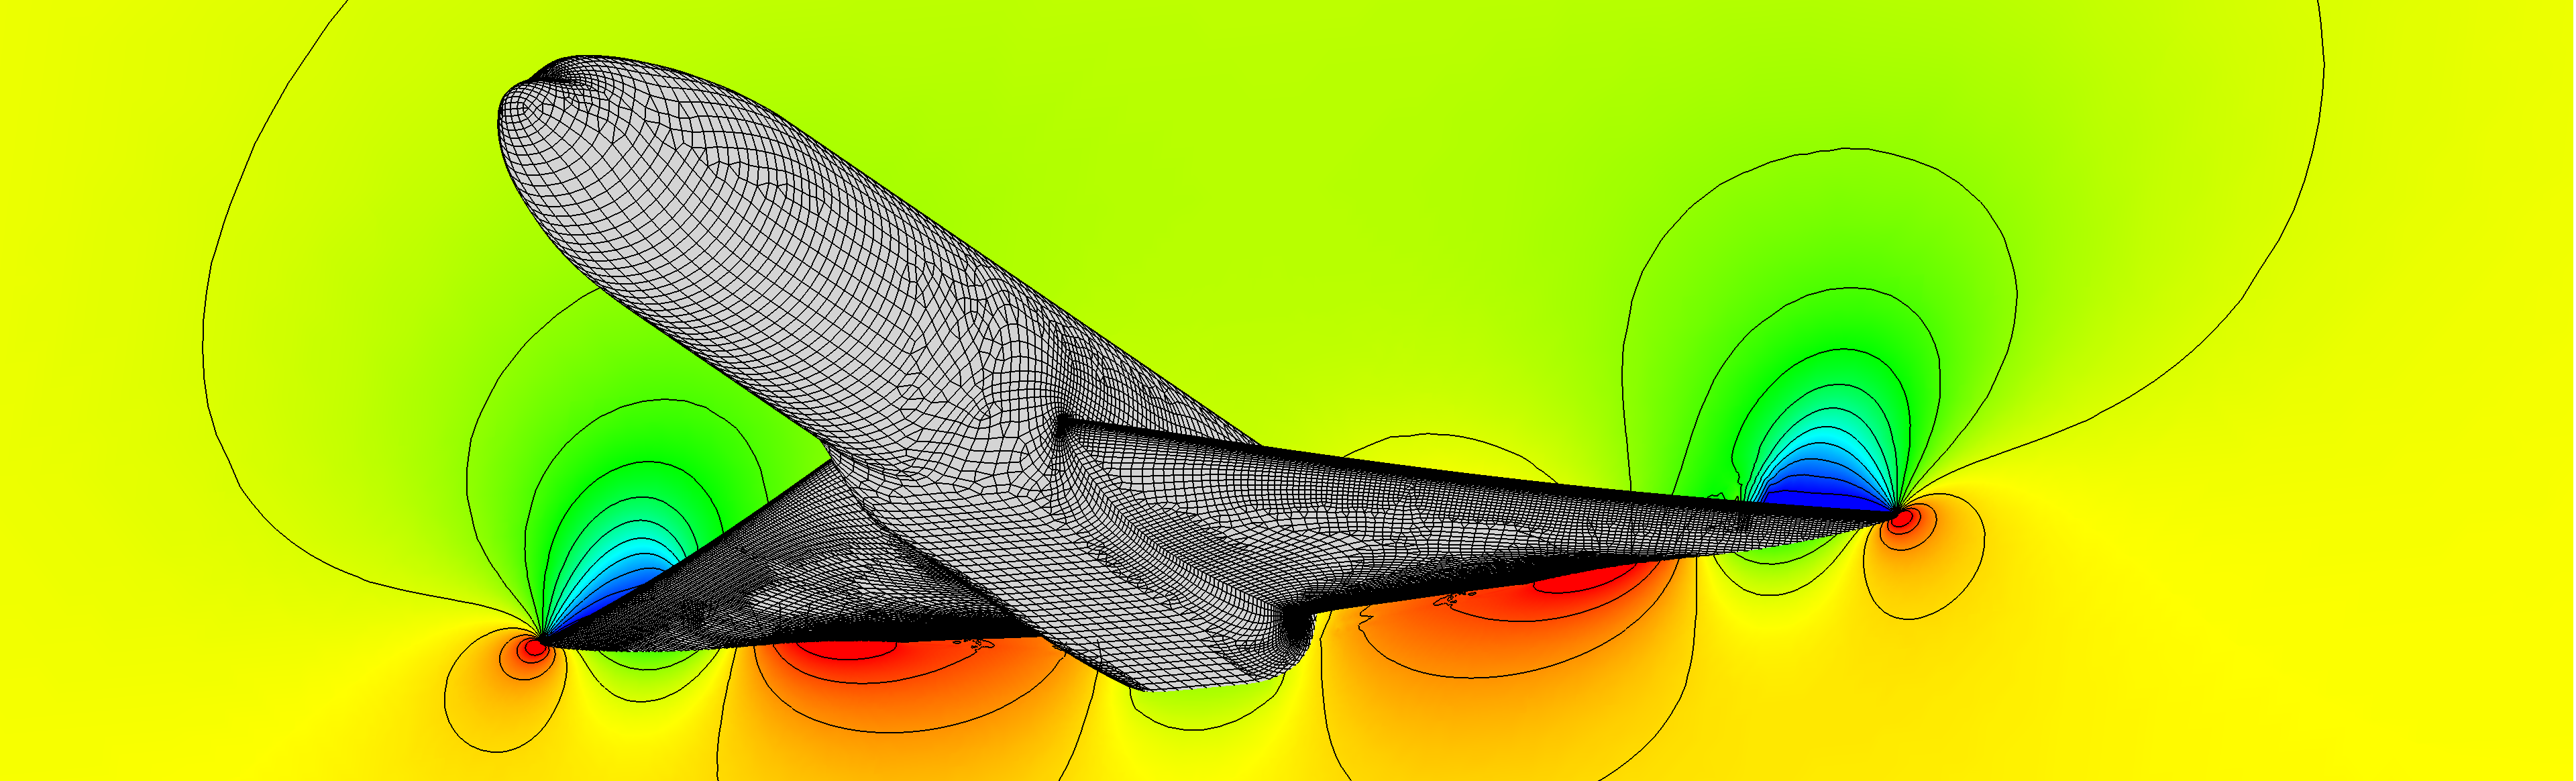 Mesh and Run a High-Fidelity Aircraft Simulation in Minutes